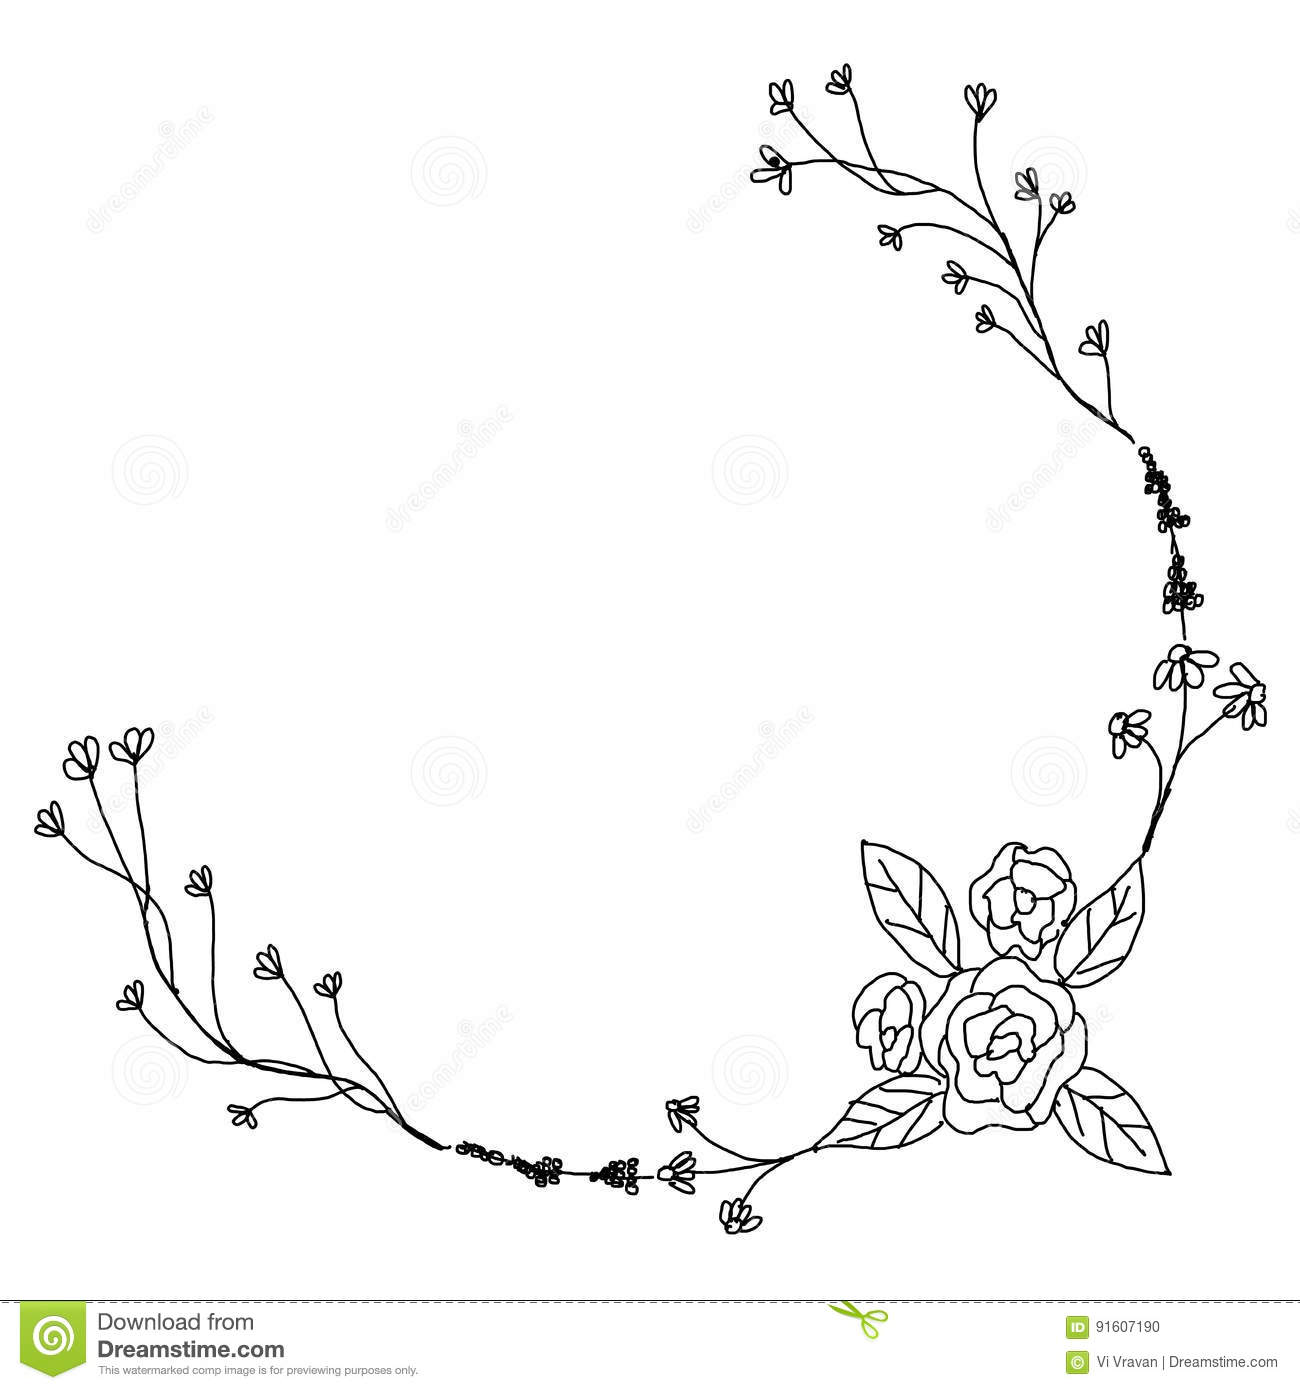 Download Black And White Hand Drawn Flower Vintage Design Wreath Stock Vector